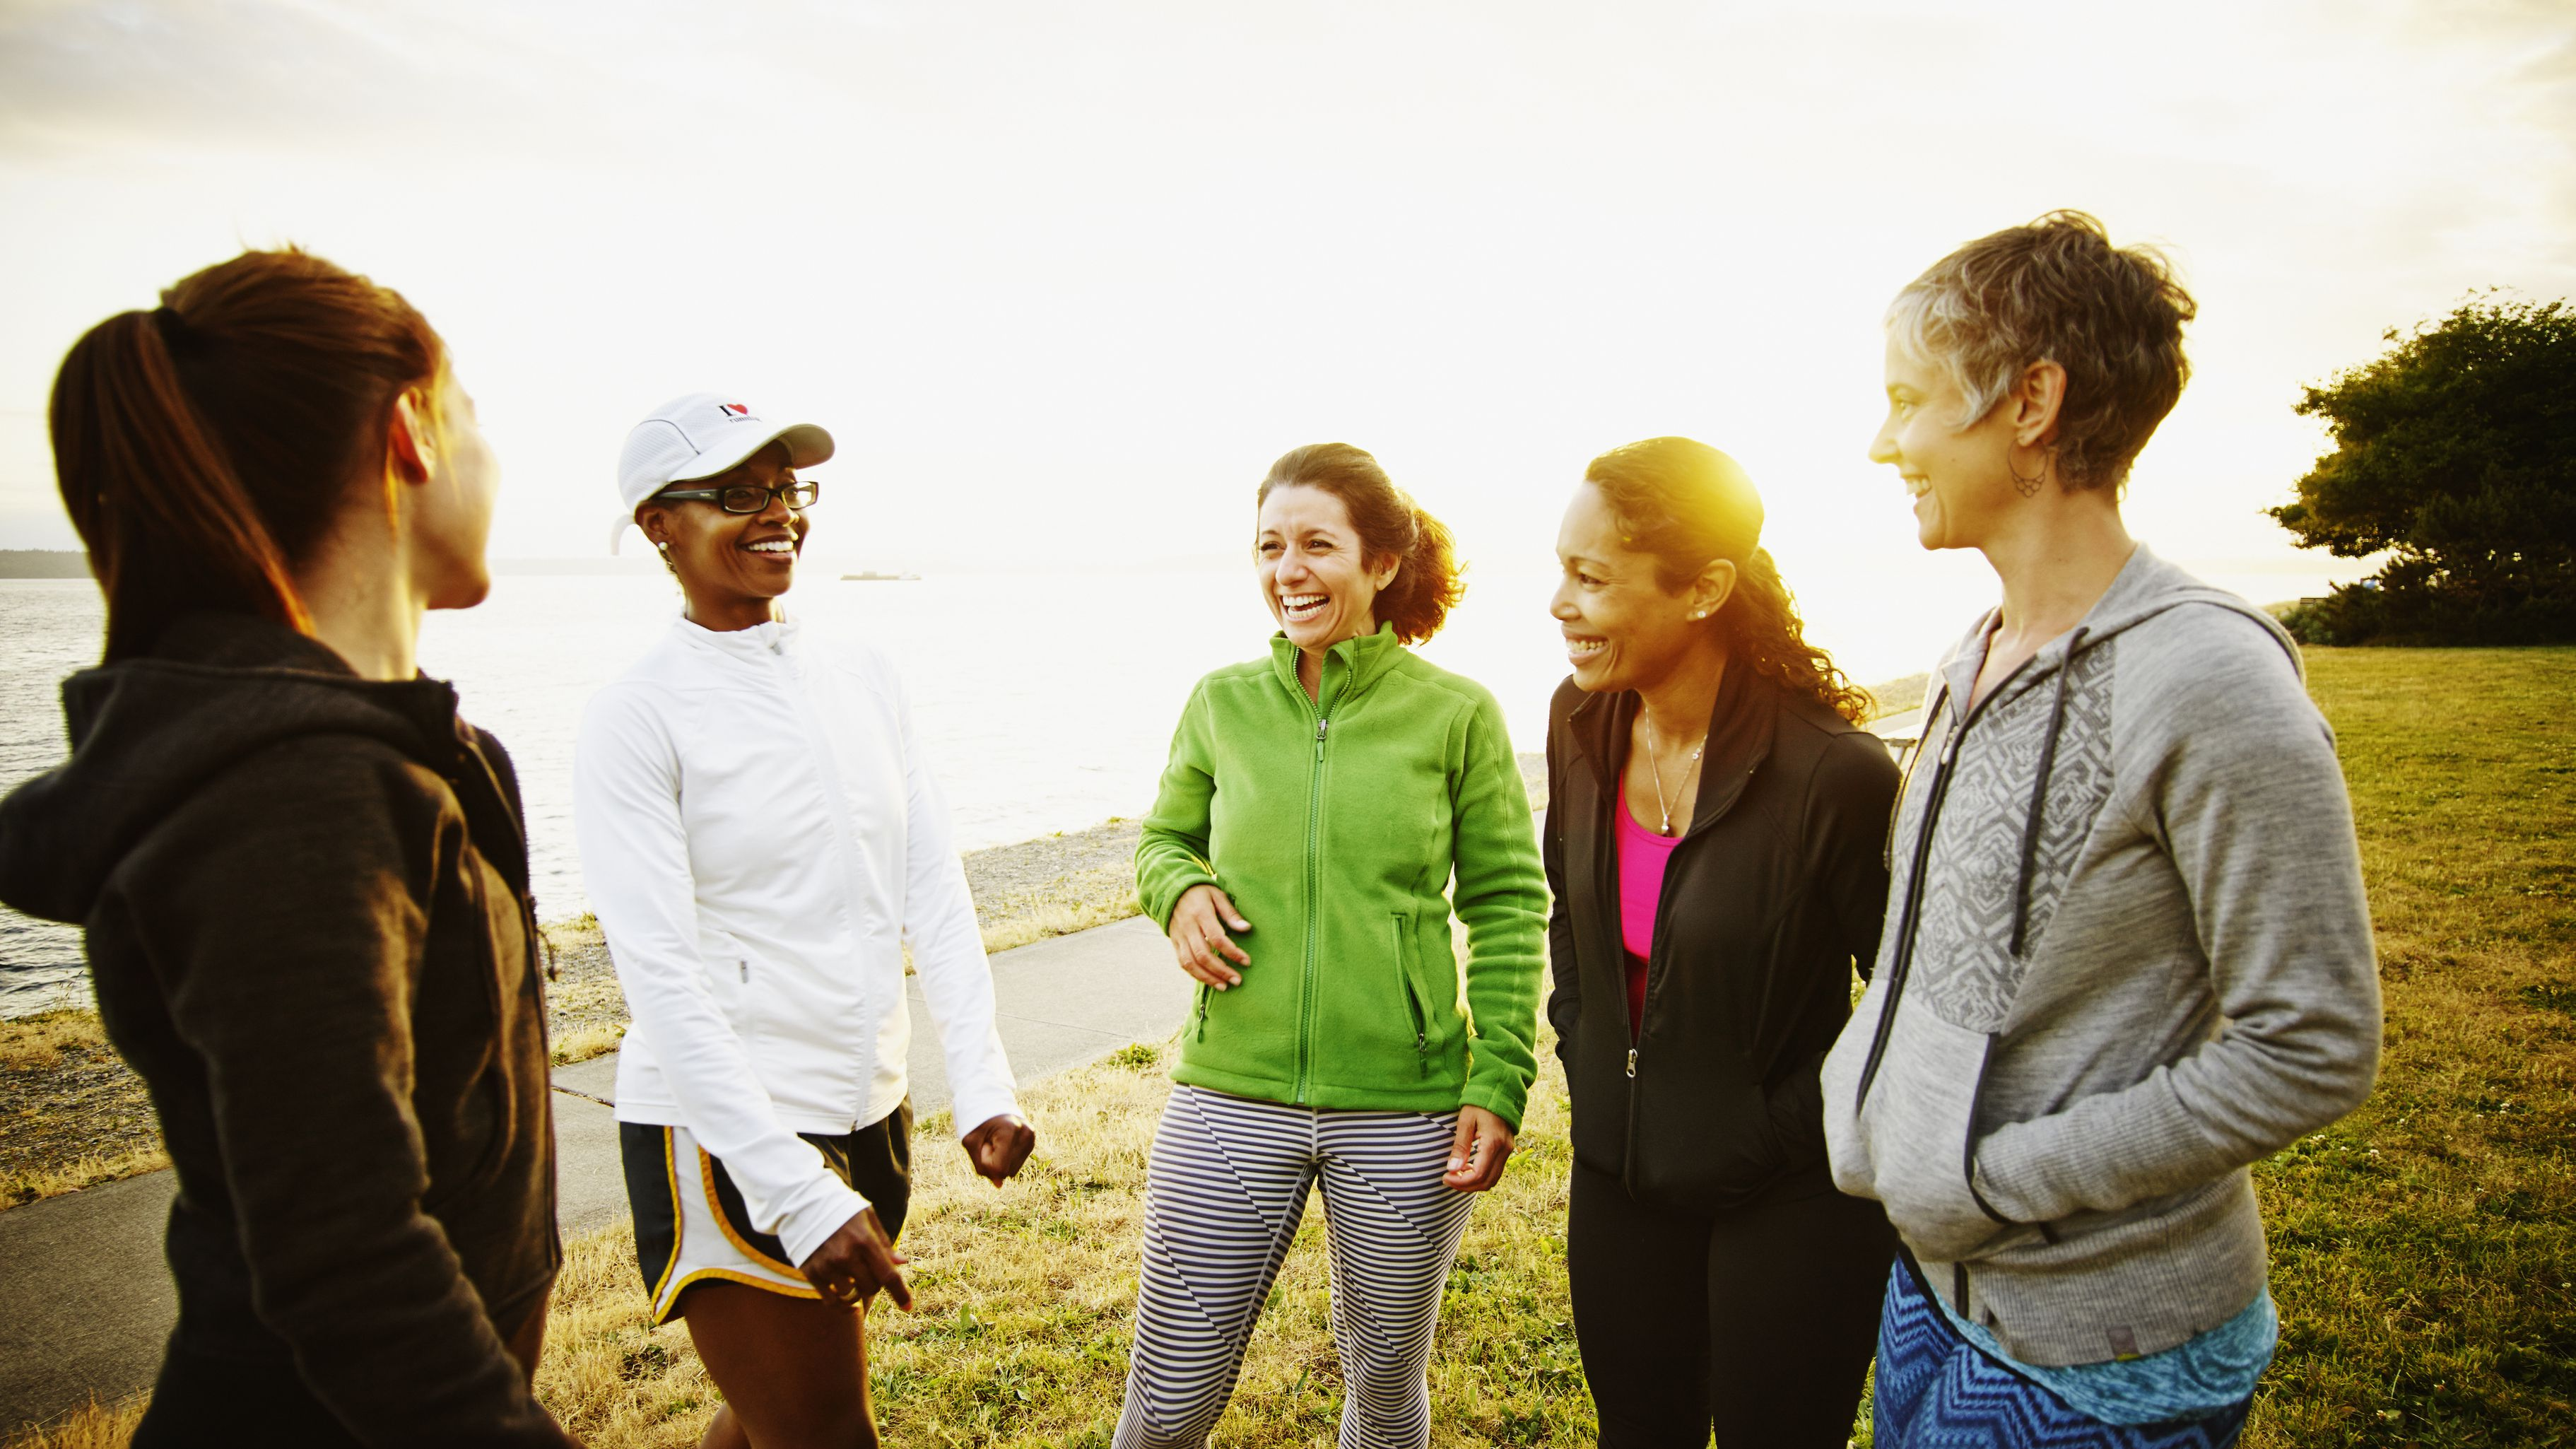 female friends laughing to her after run in park ad05f9b58f22ecf062e